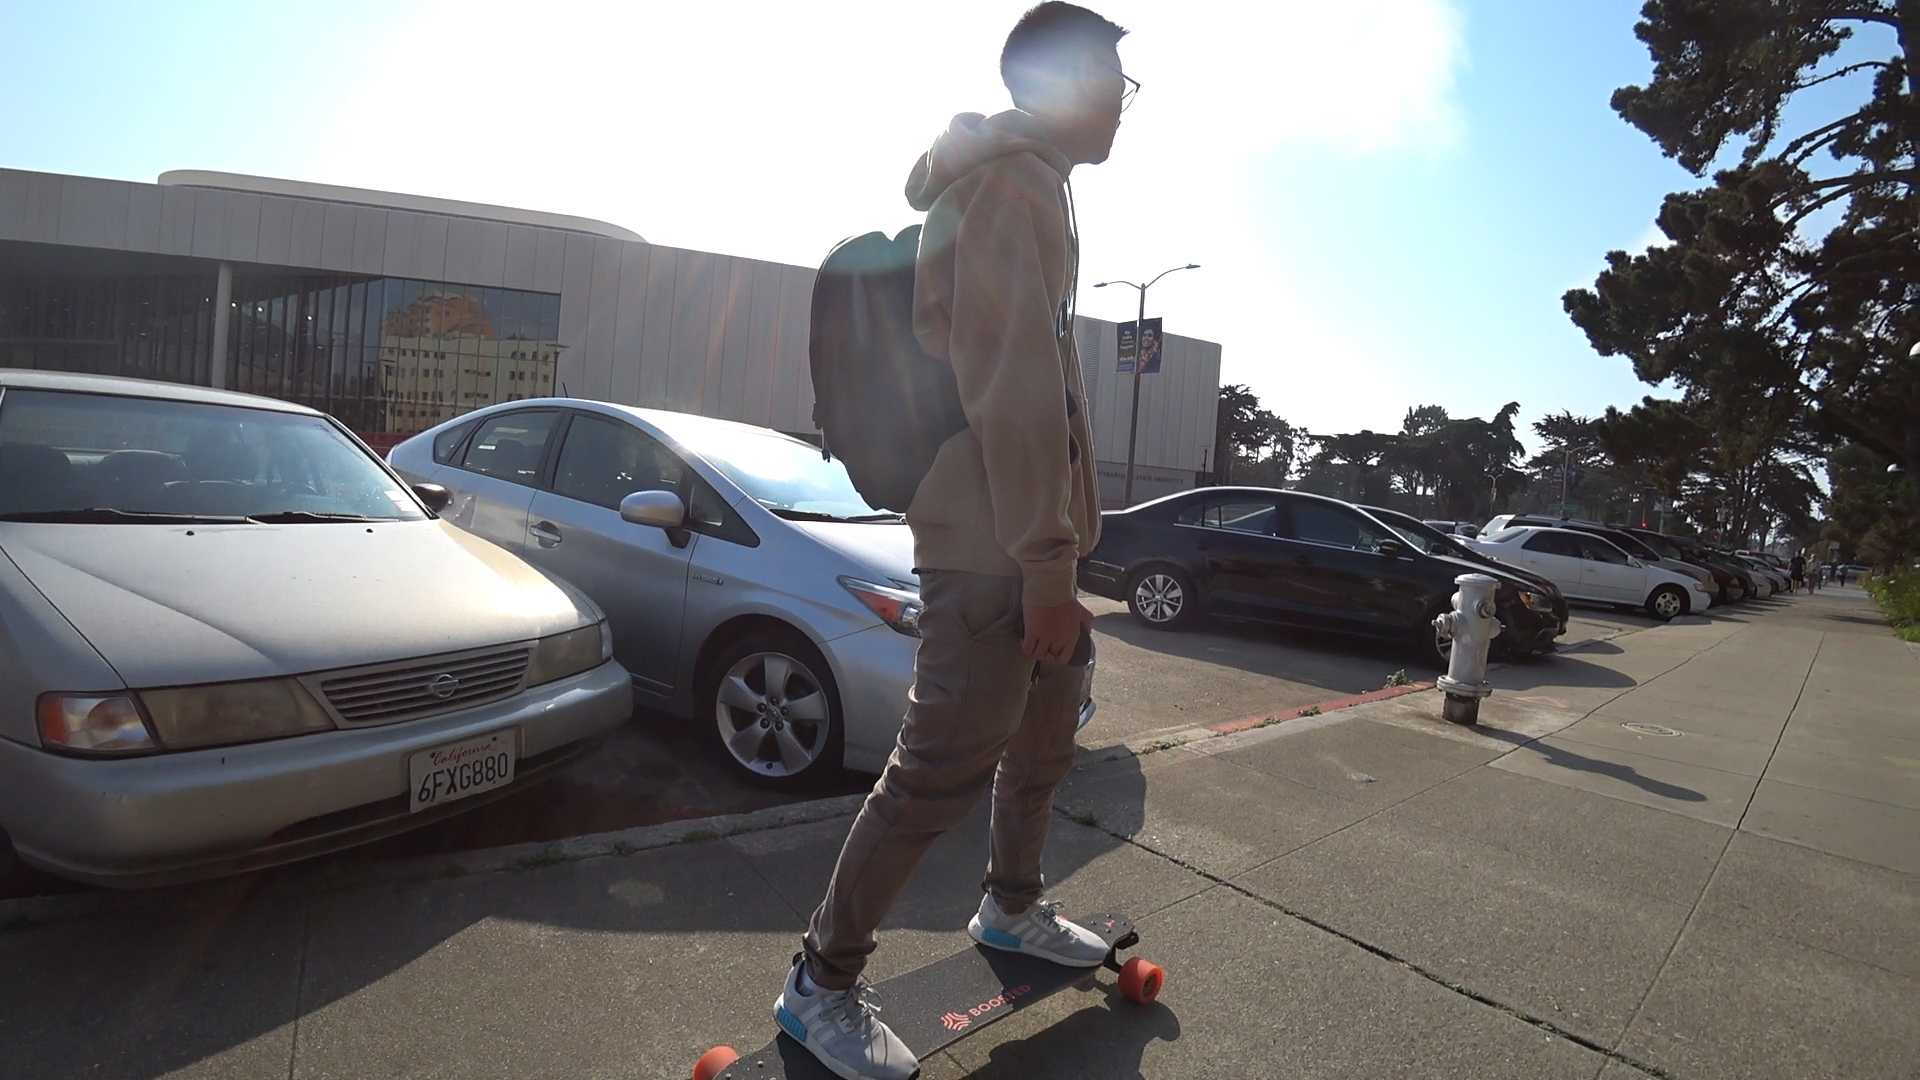 Emerging Electric Skateboard Scene at SF State